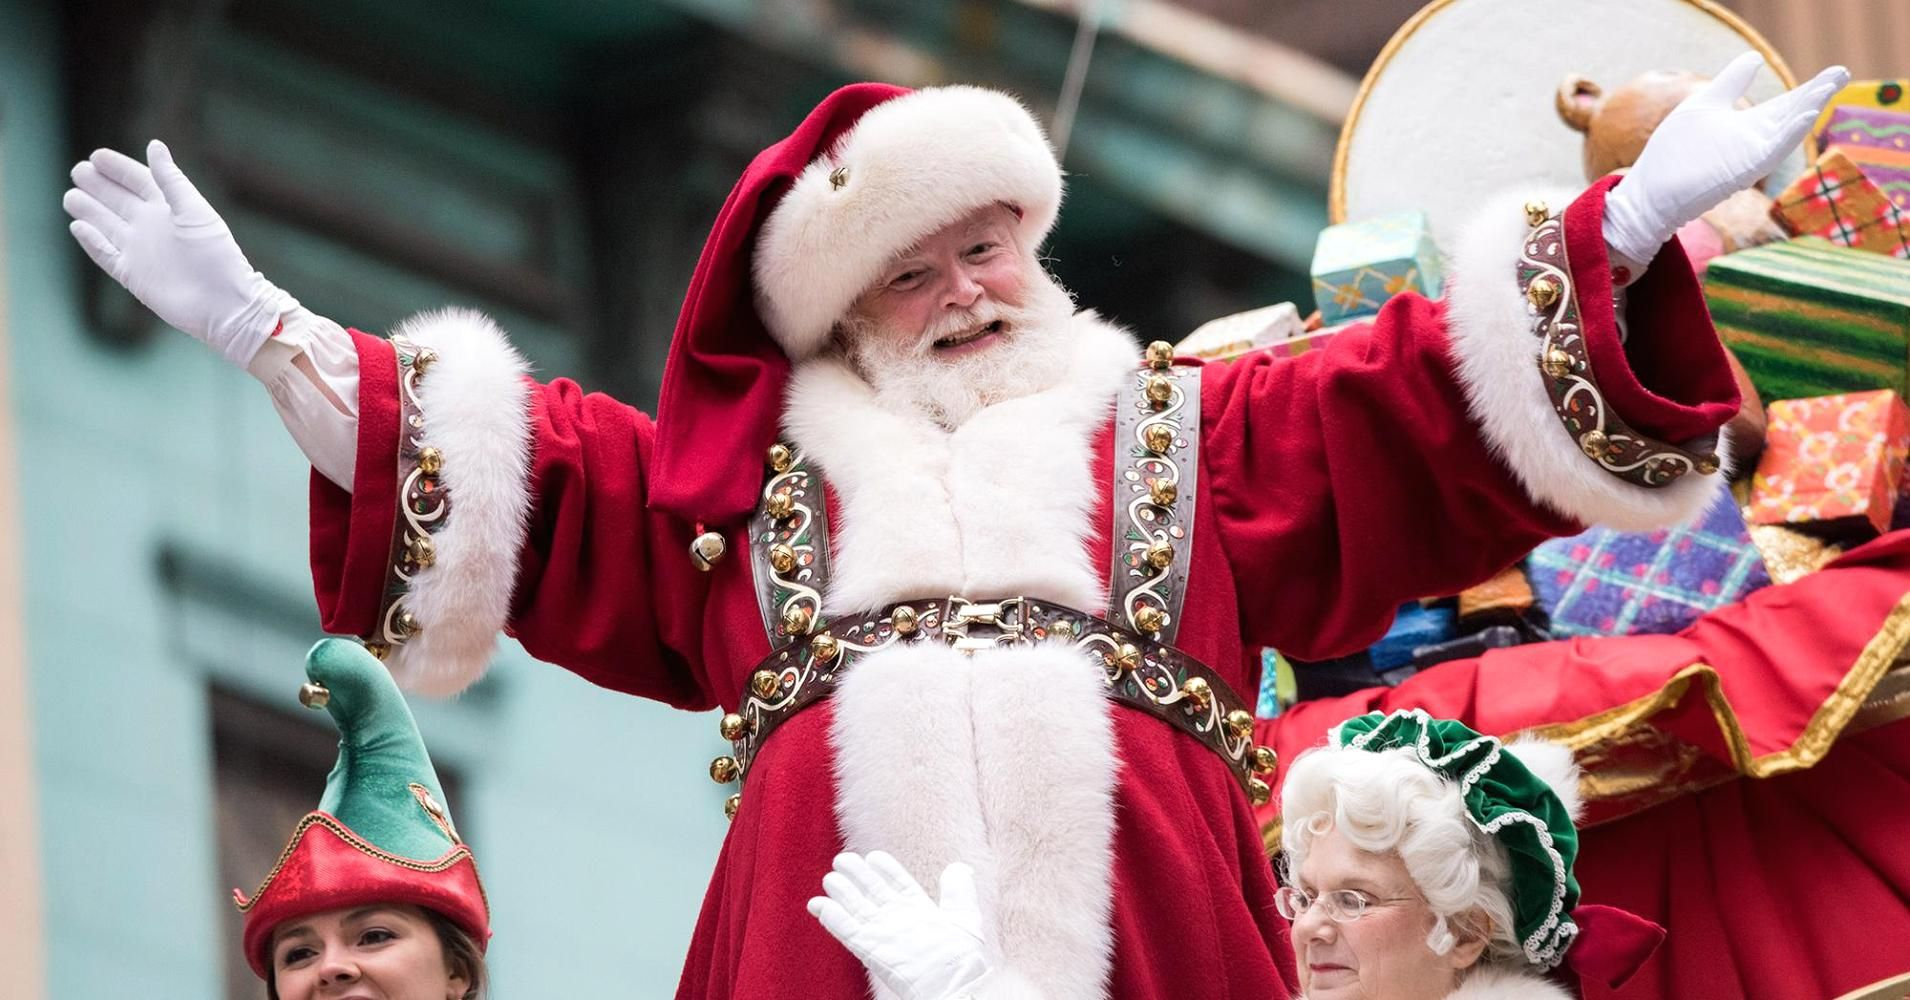 Santa S In City You Require An Appointment This 12 Months Macy S Thanksgiving Day Parade Thanksgiving Day Parade Macy S Thanksgiving Day Parade